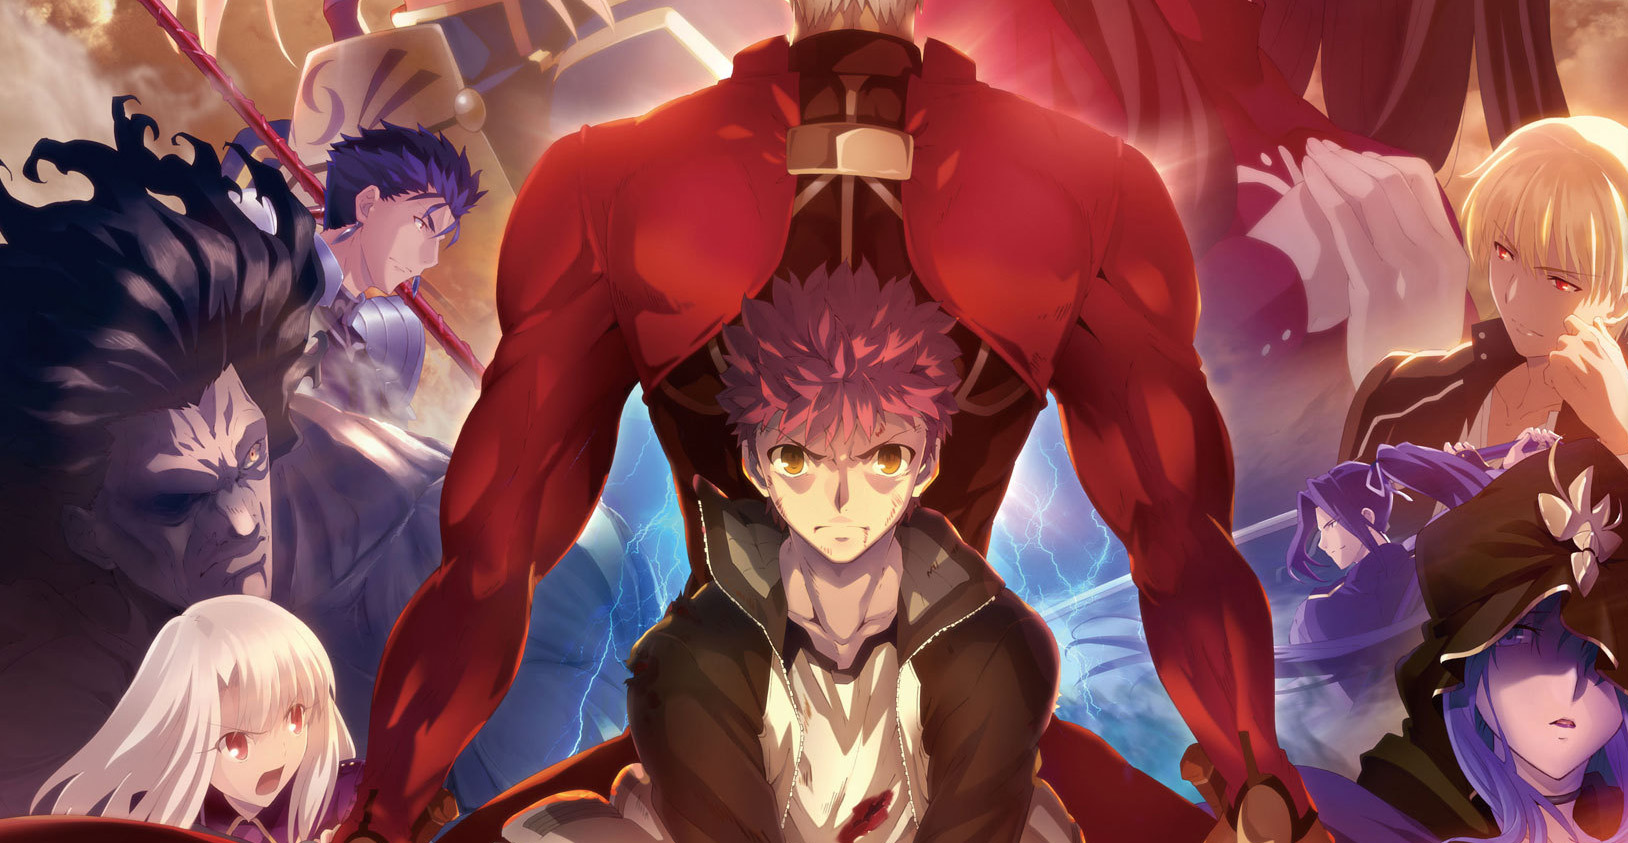 FateStay Night Unlimited Blade Works Season 2 Commercials Aired 1628x843